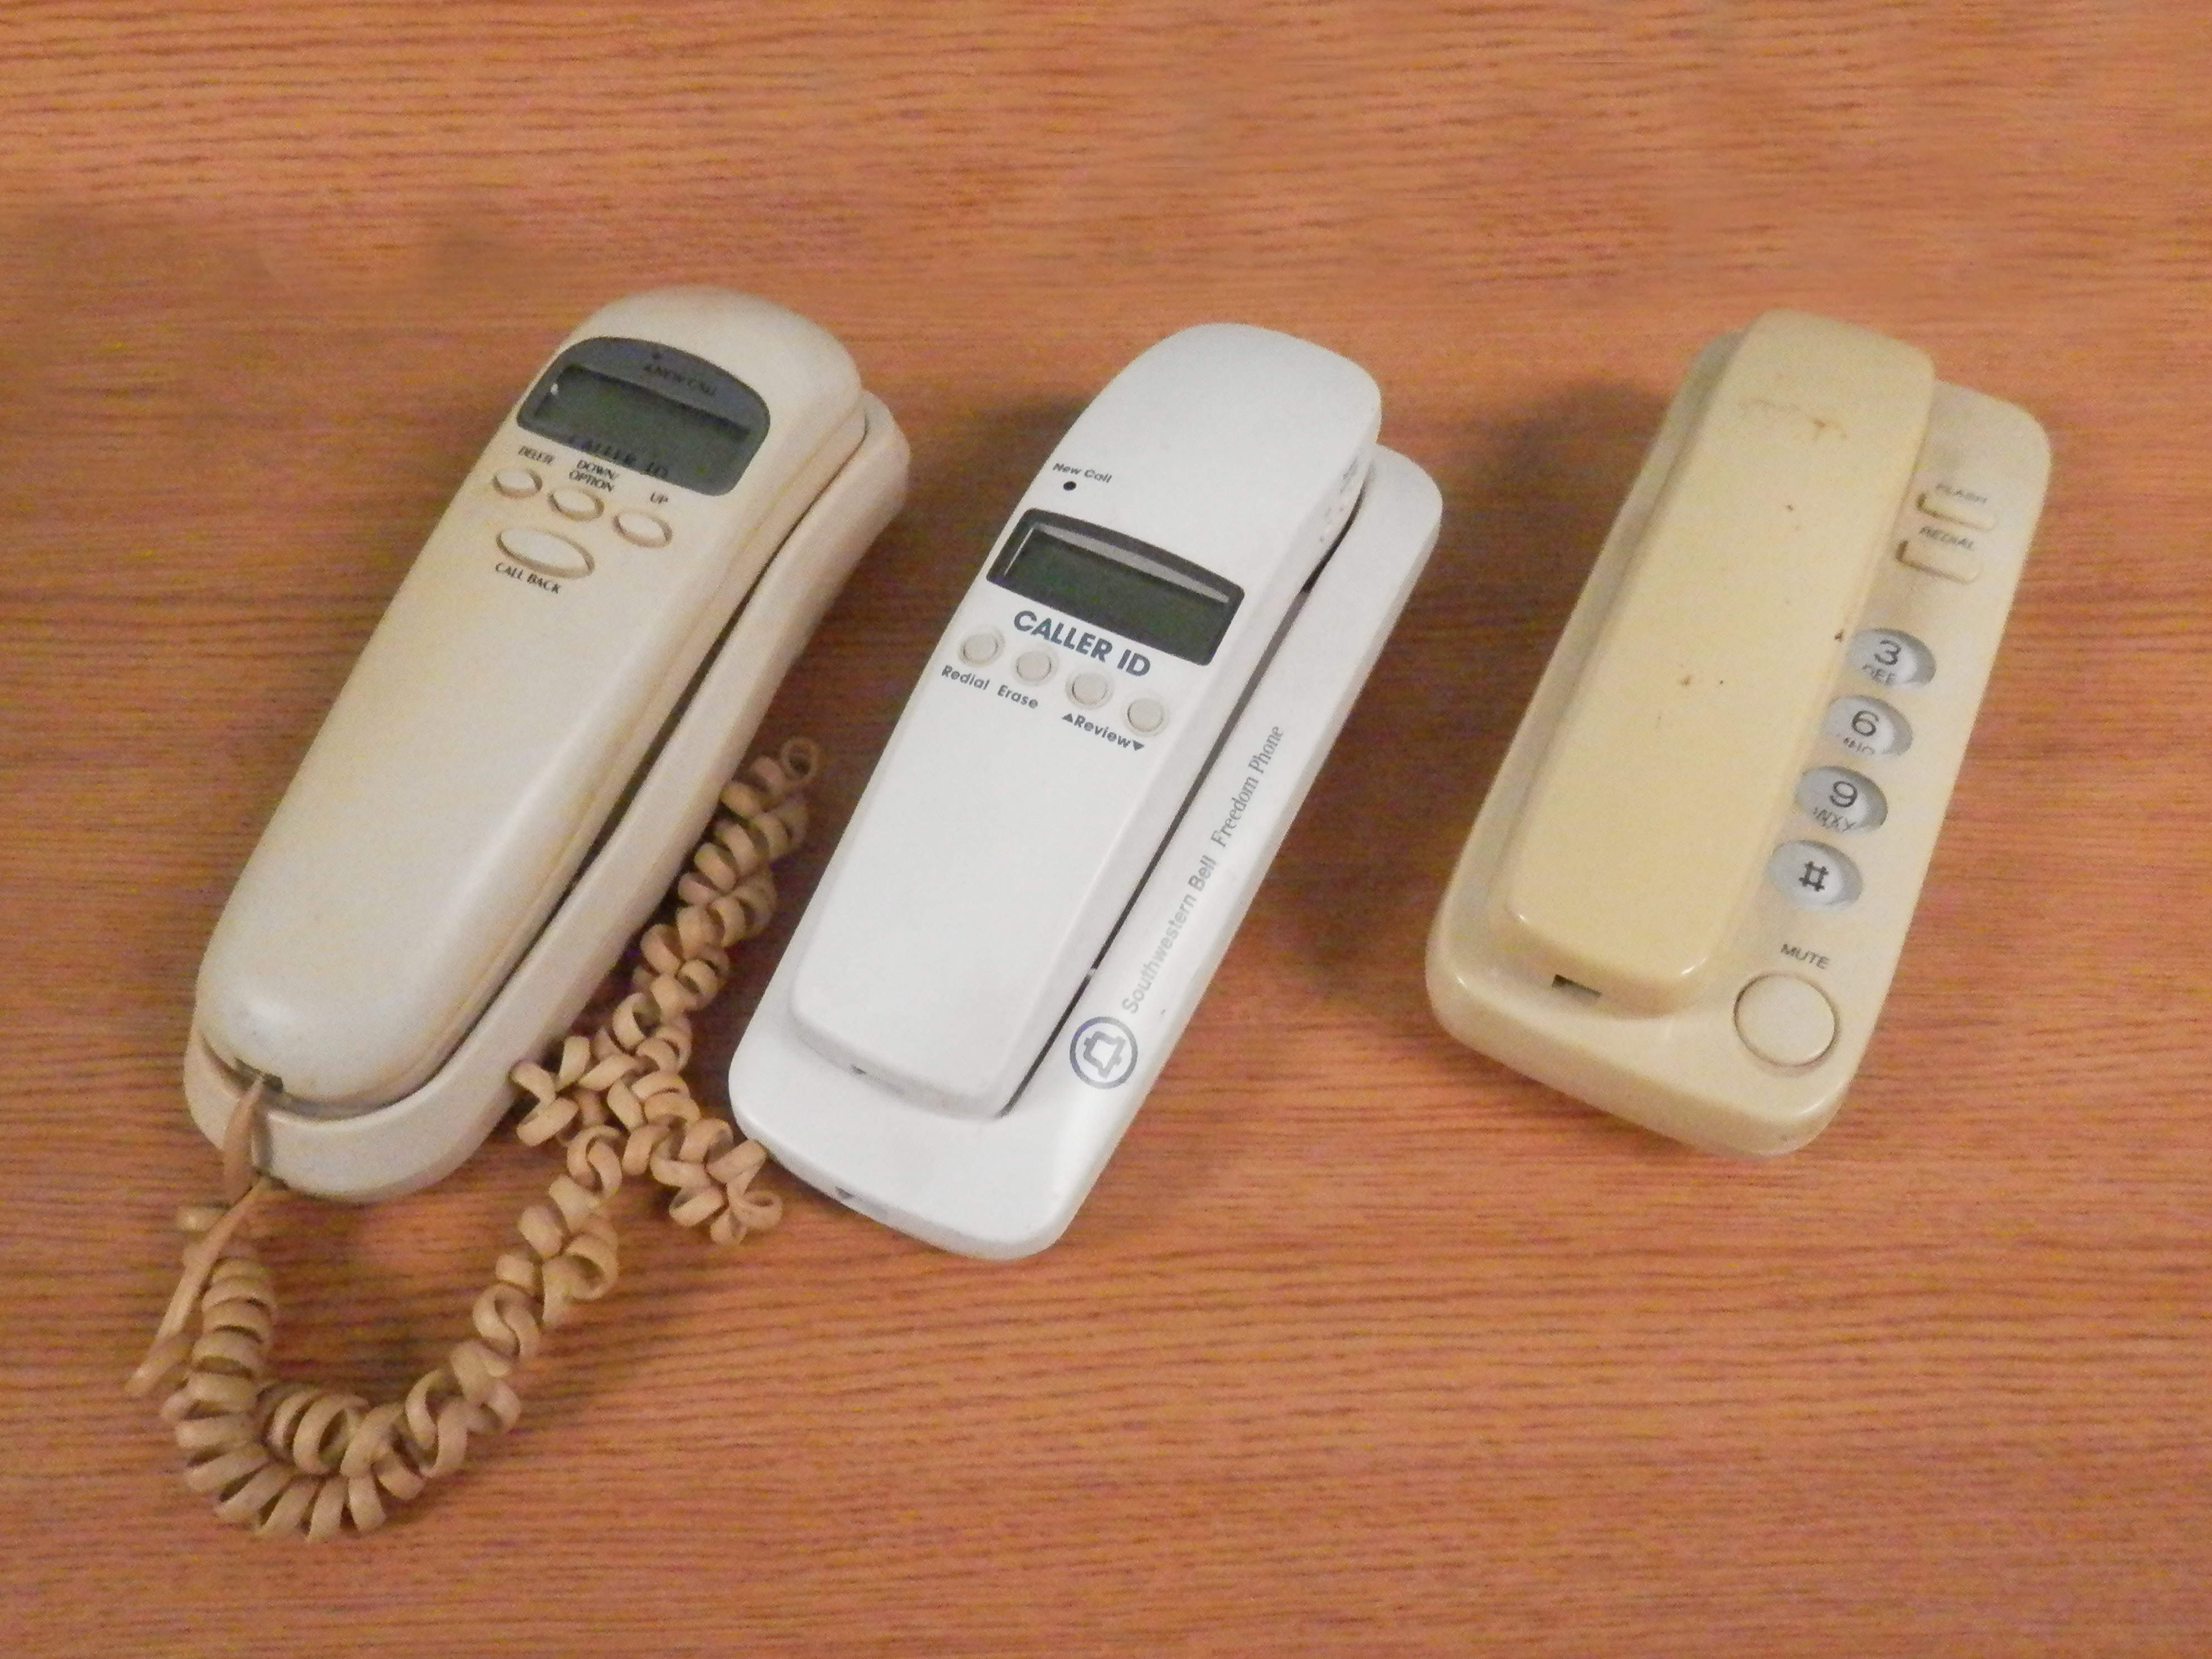 Wall Phone Units beige white